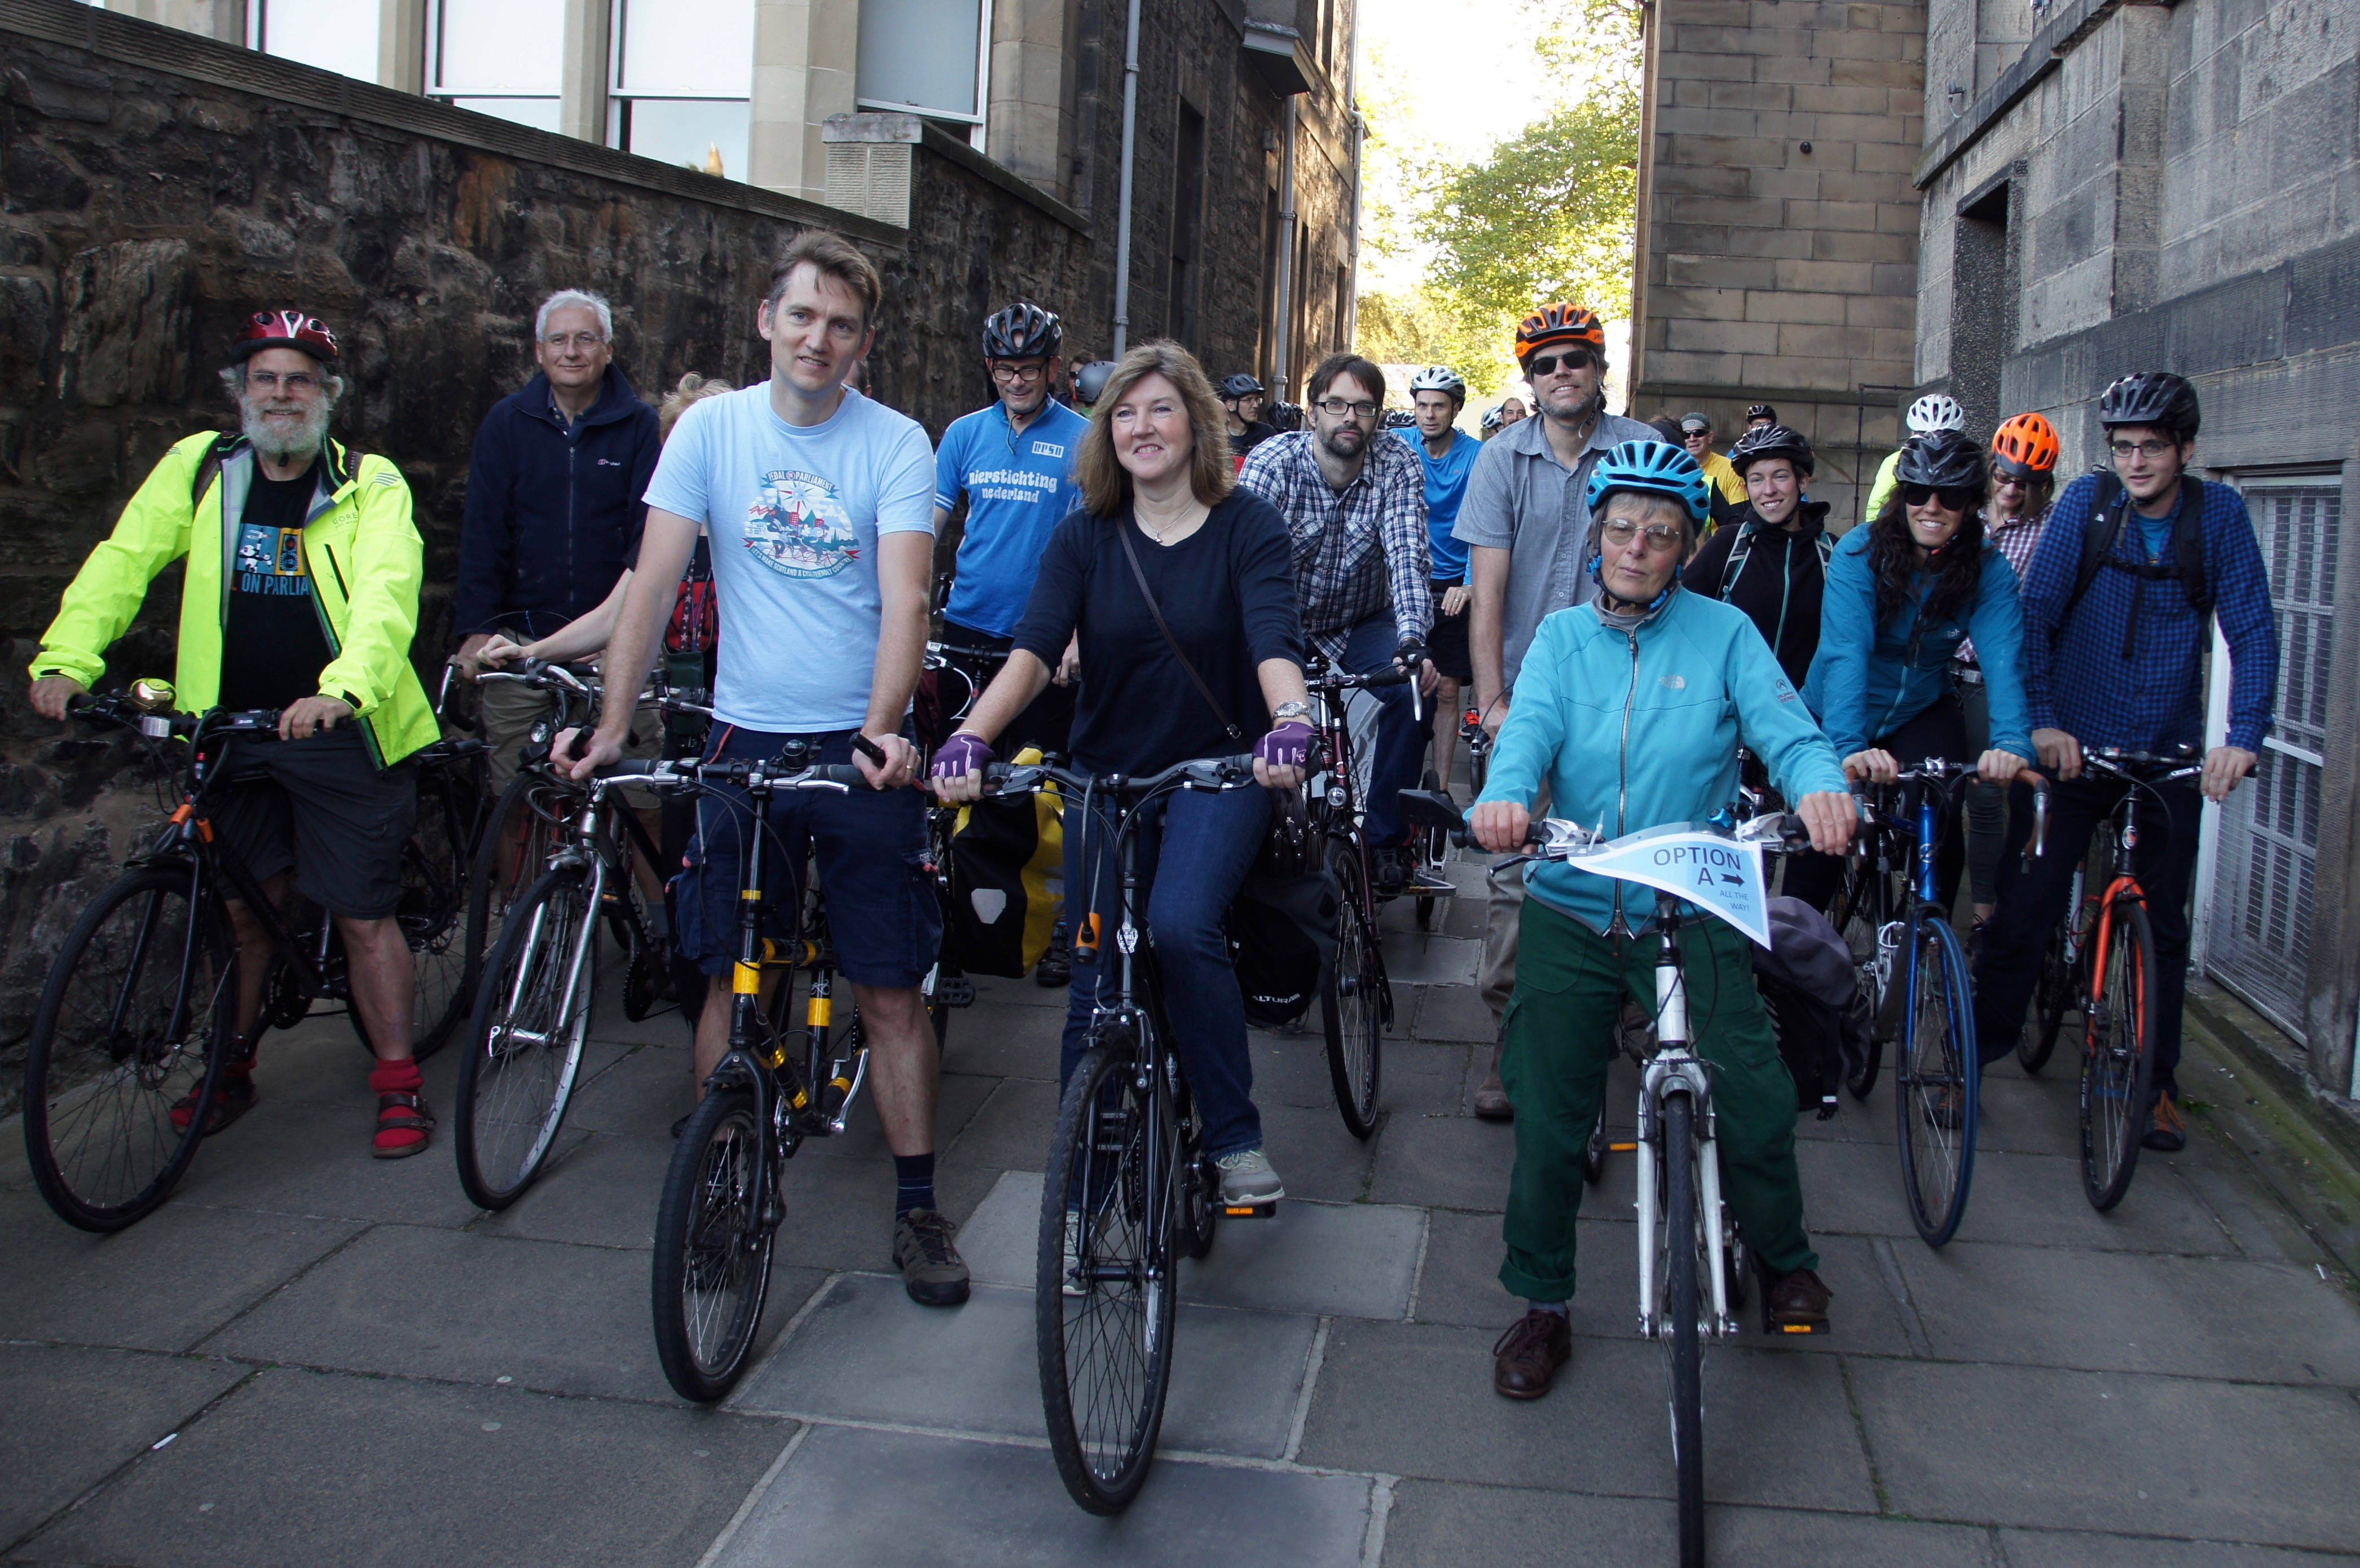 pro-cycling campaigners lined up on cycle route on bikes